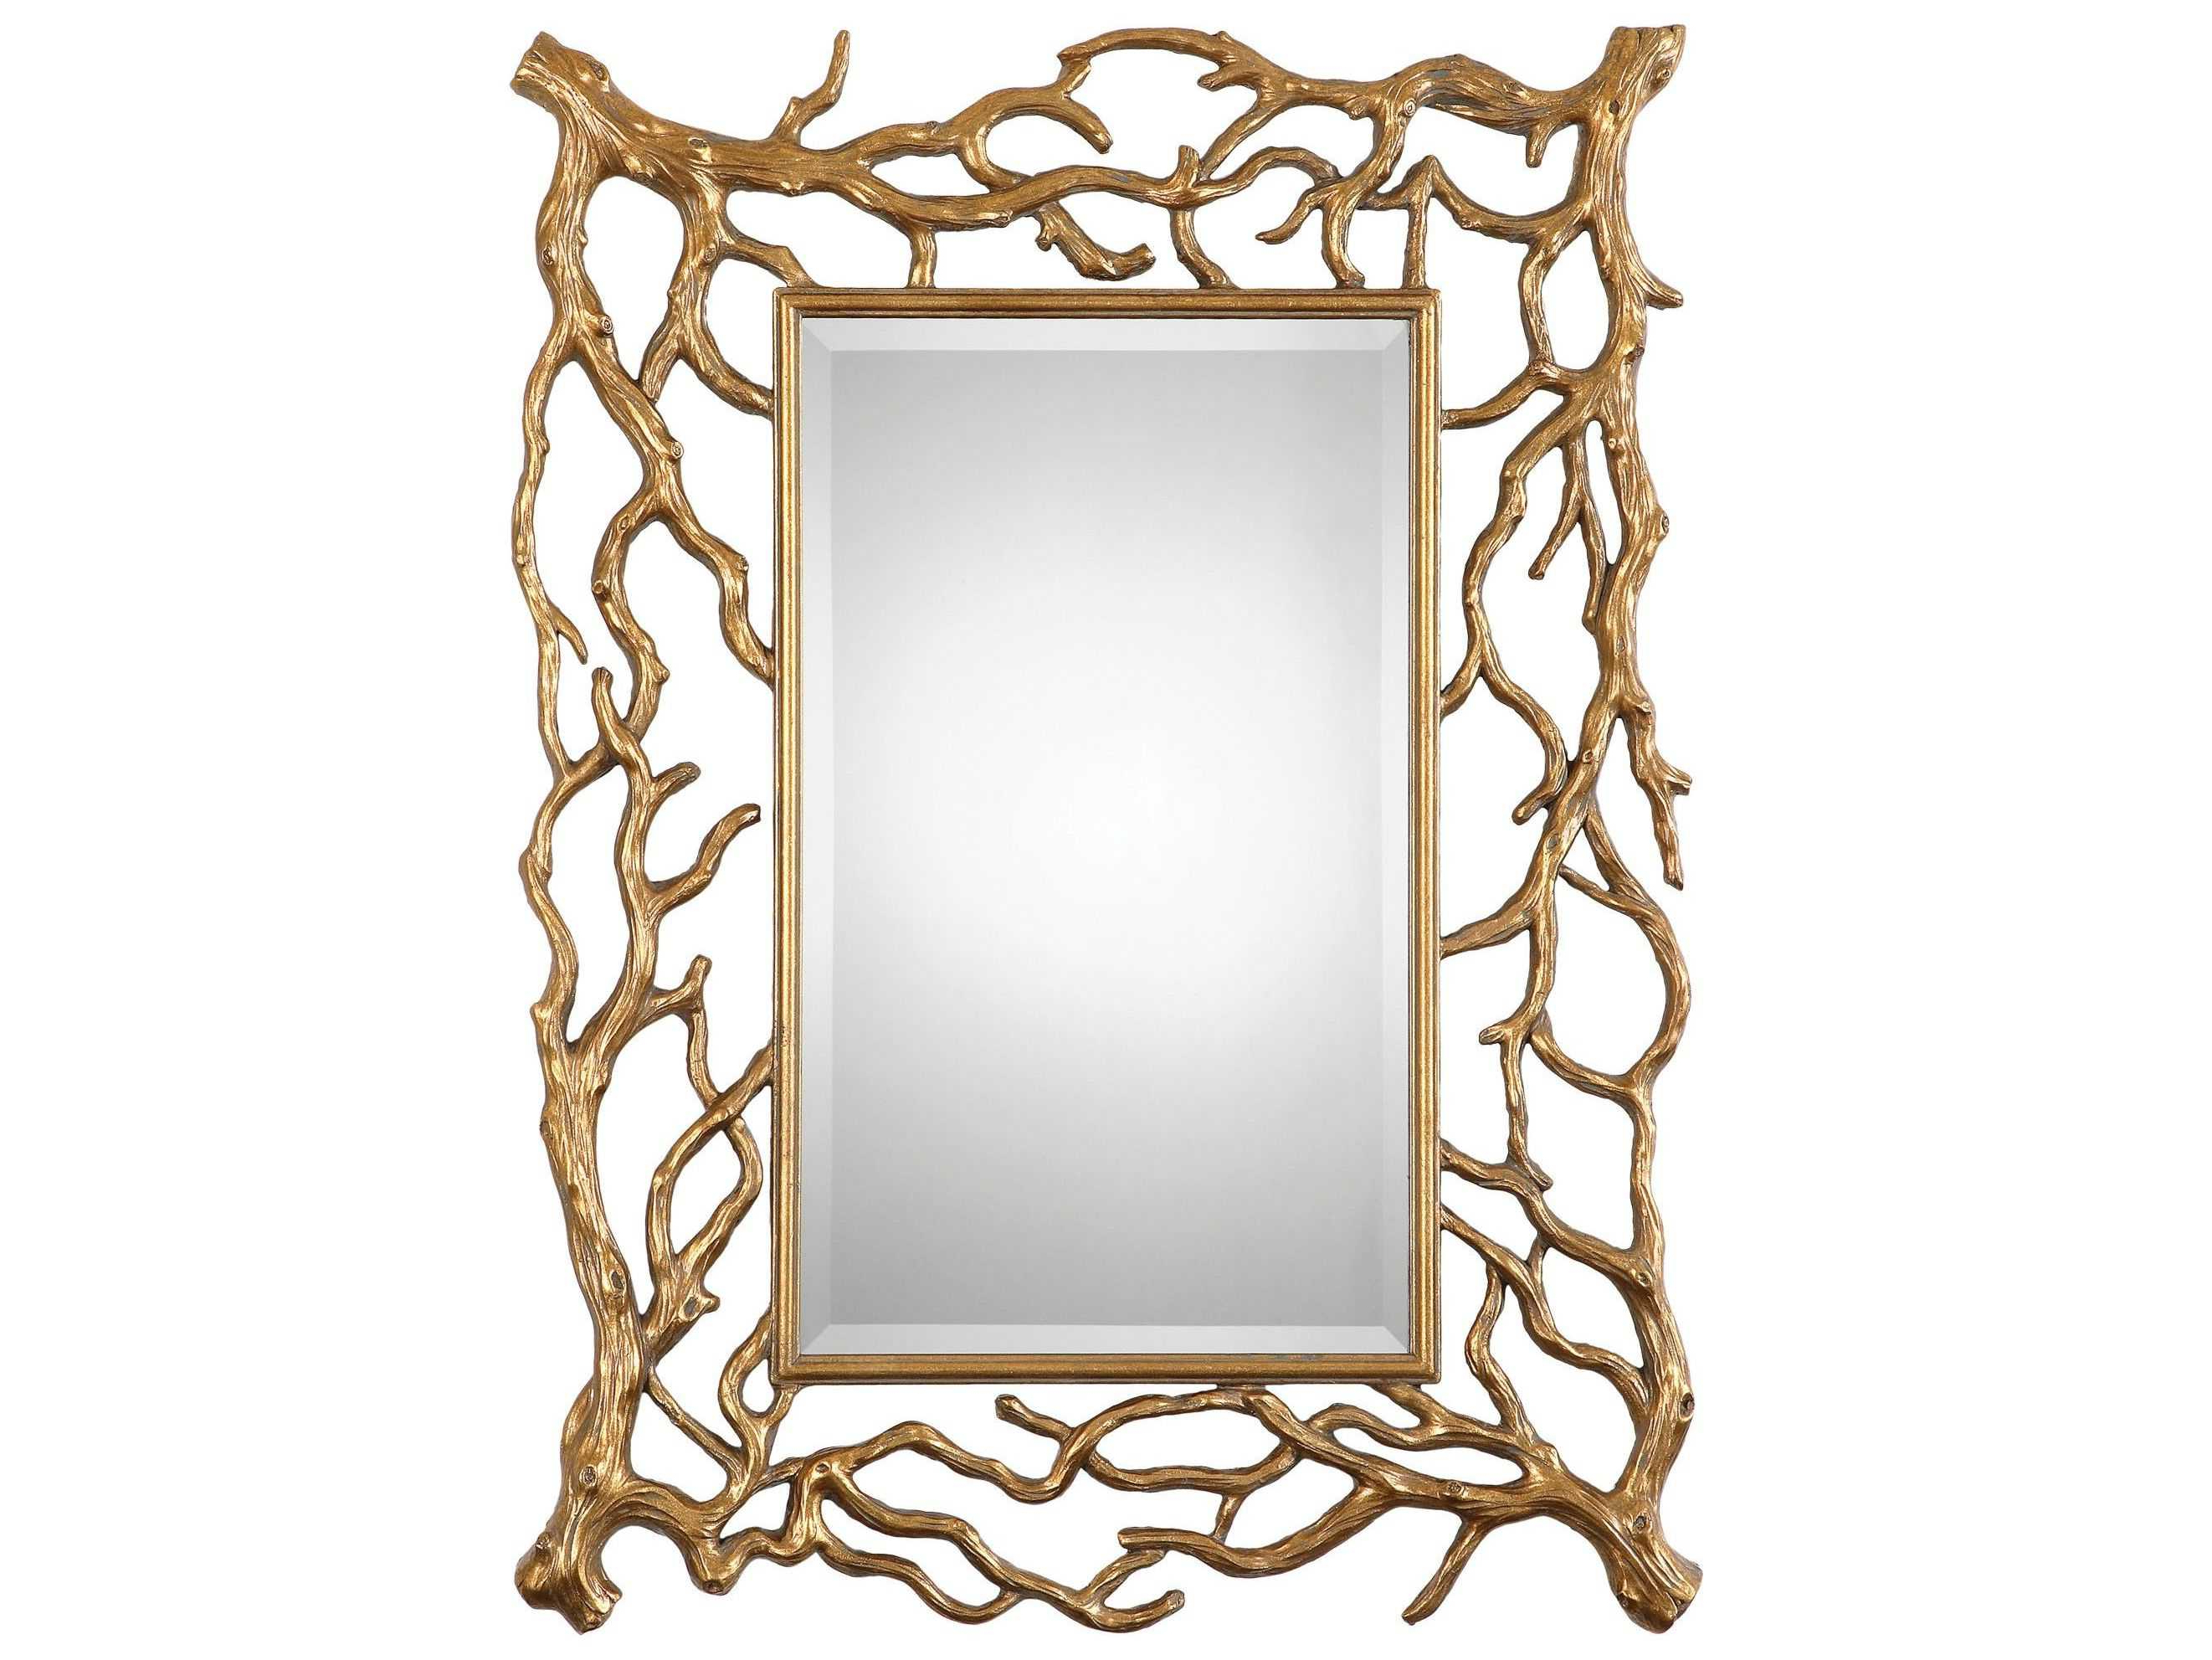 Uttermost Sequoia 30 X 40 Gold Tree Branch Wall Mirror Pertaining To Well Known Talida Wall Mirrors (View 17 of 20)